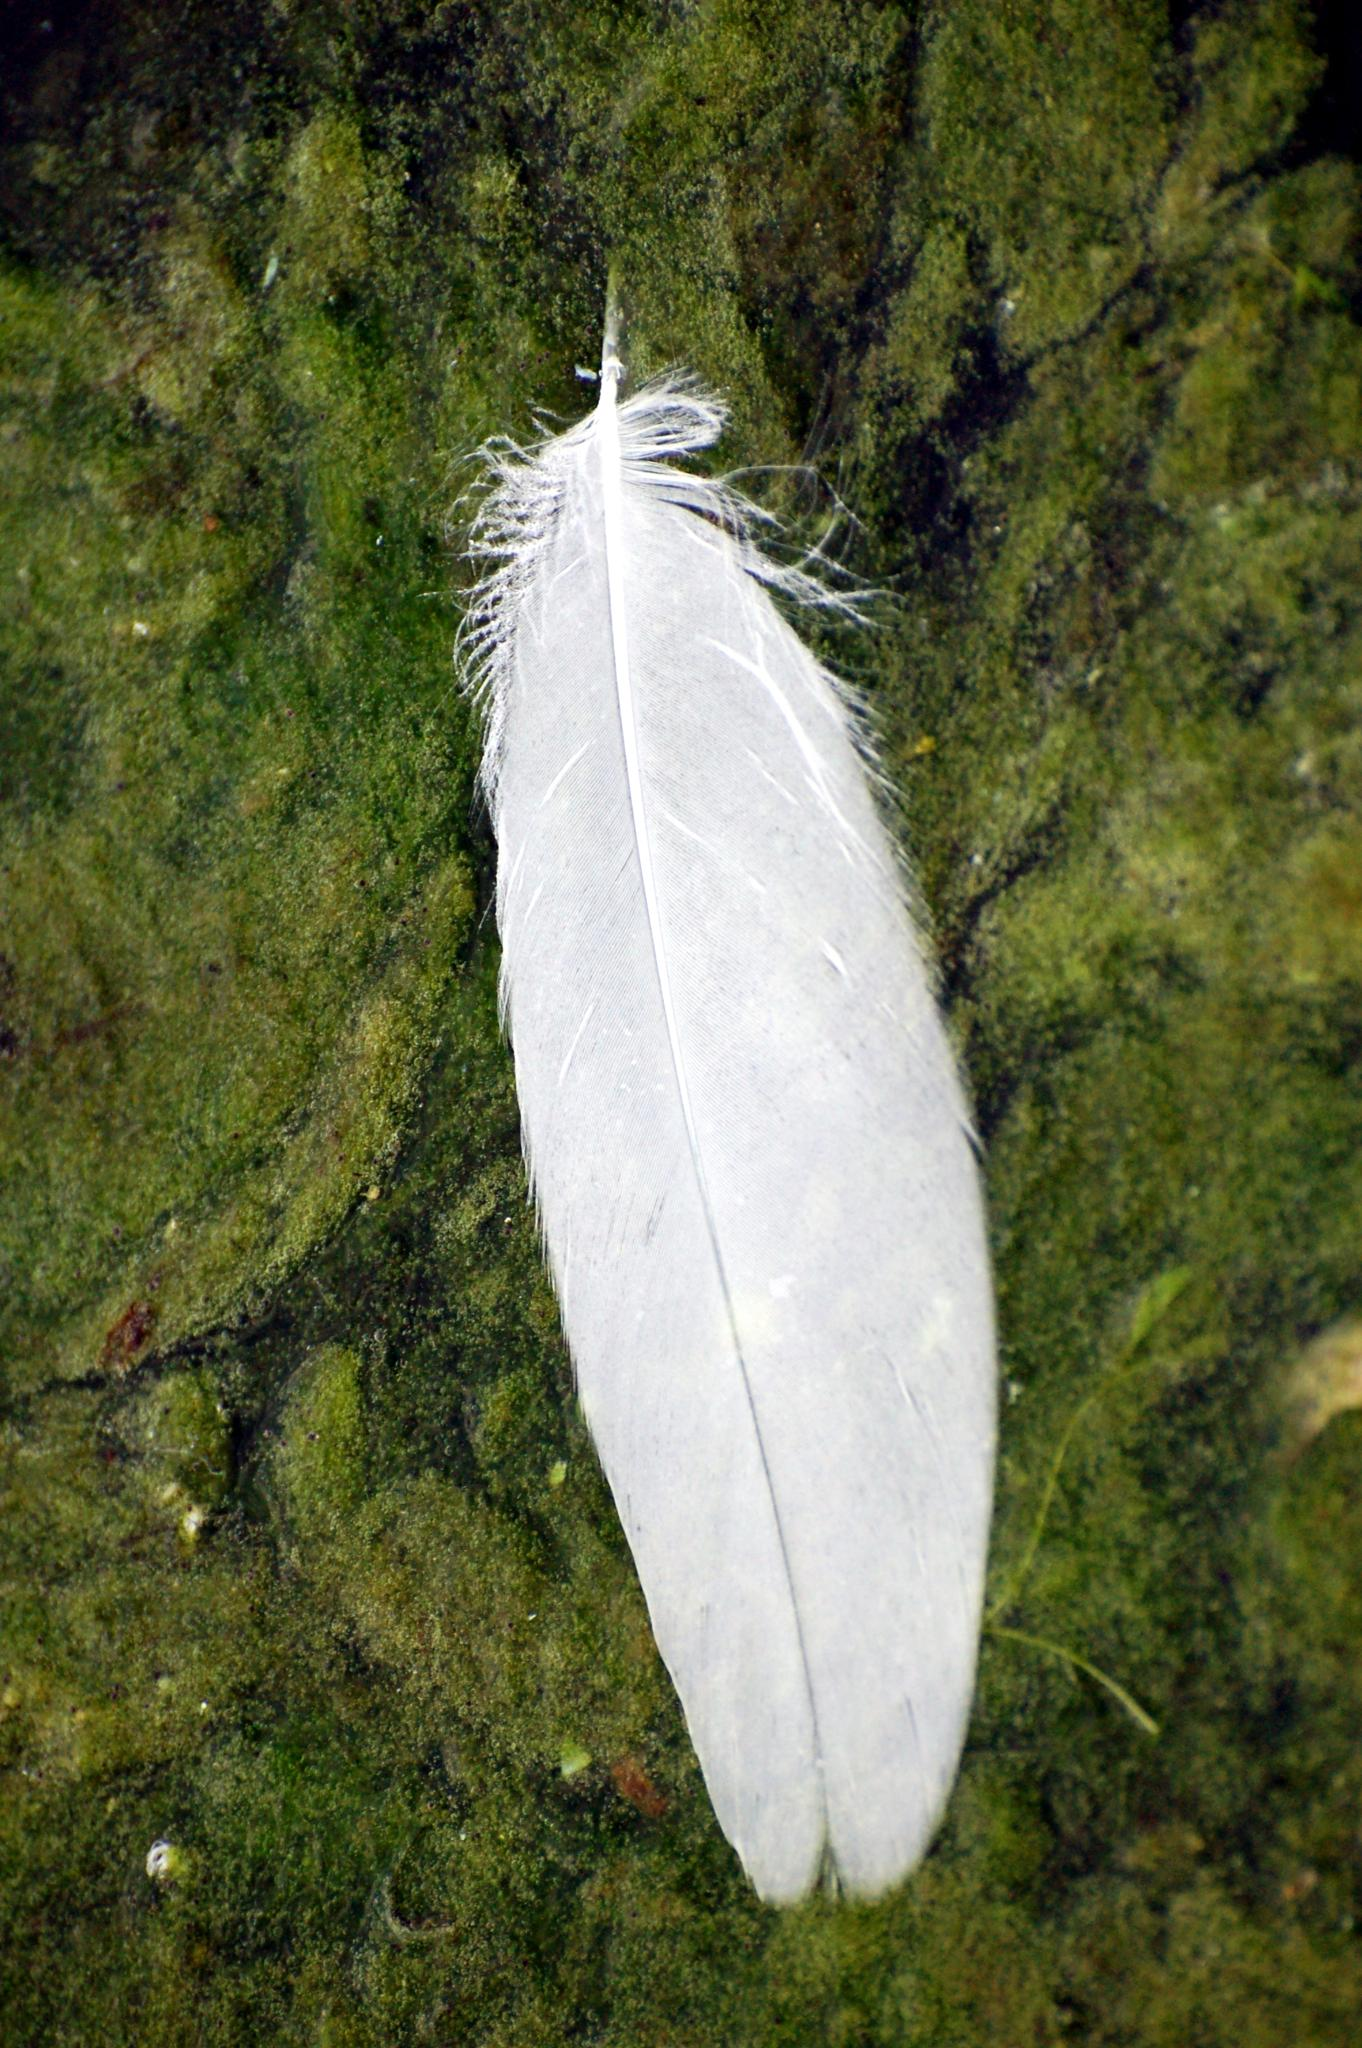 Swan's Feather by lazy.human